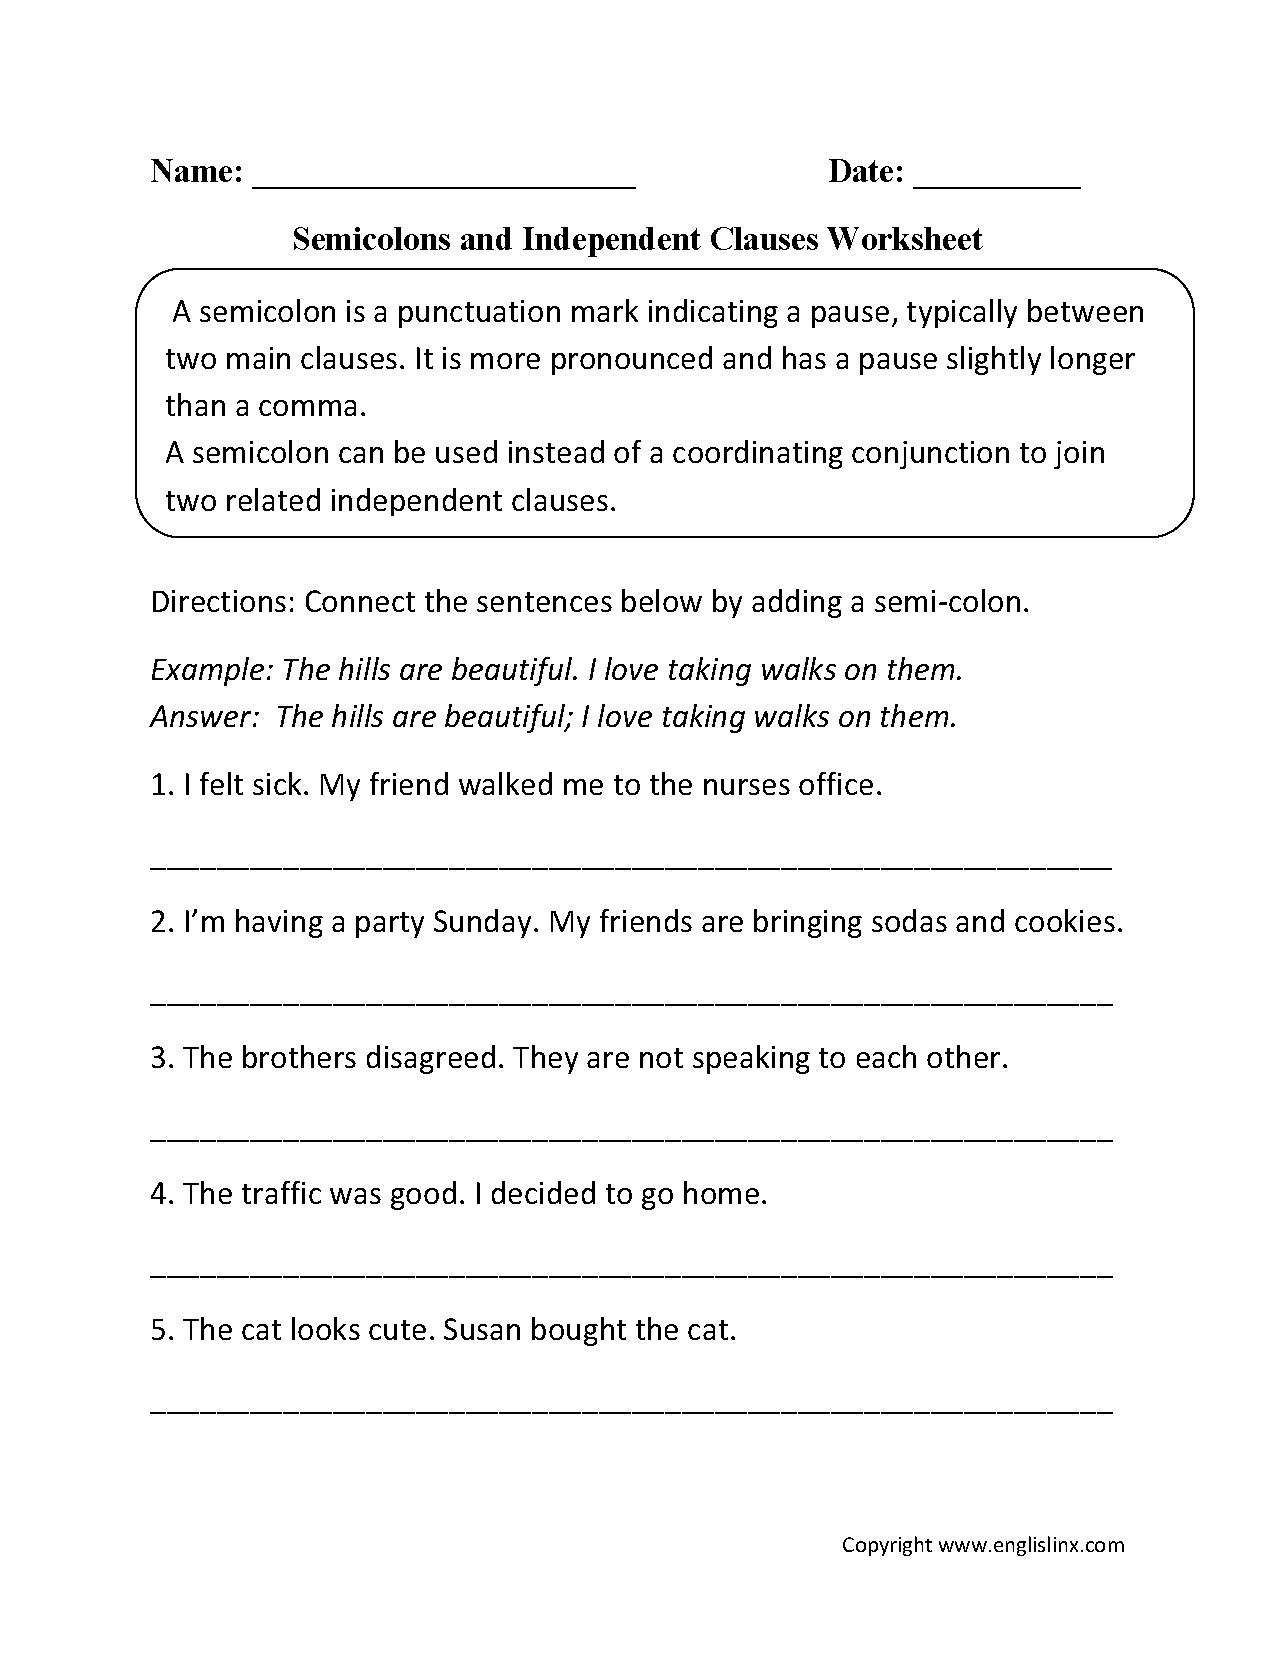 Worksheets Independent Clause Worksheet punctuation worksheets semicolon and independent clause worksheet